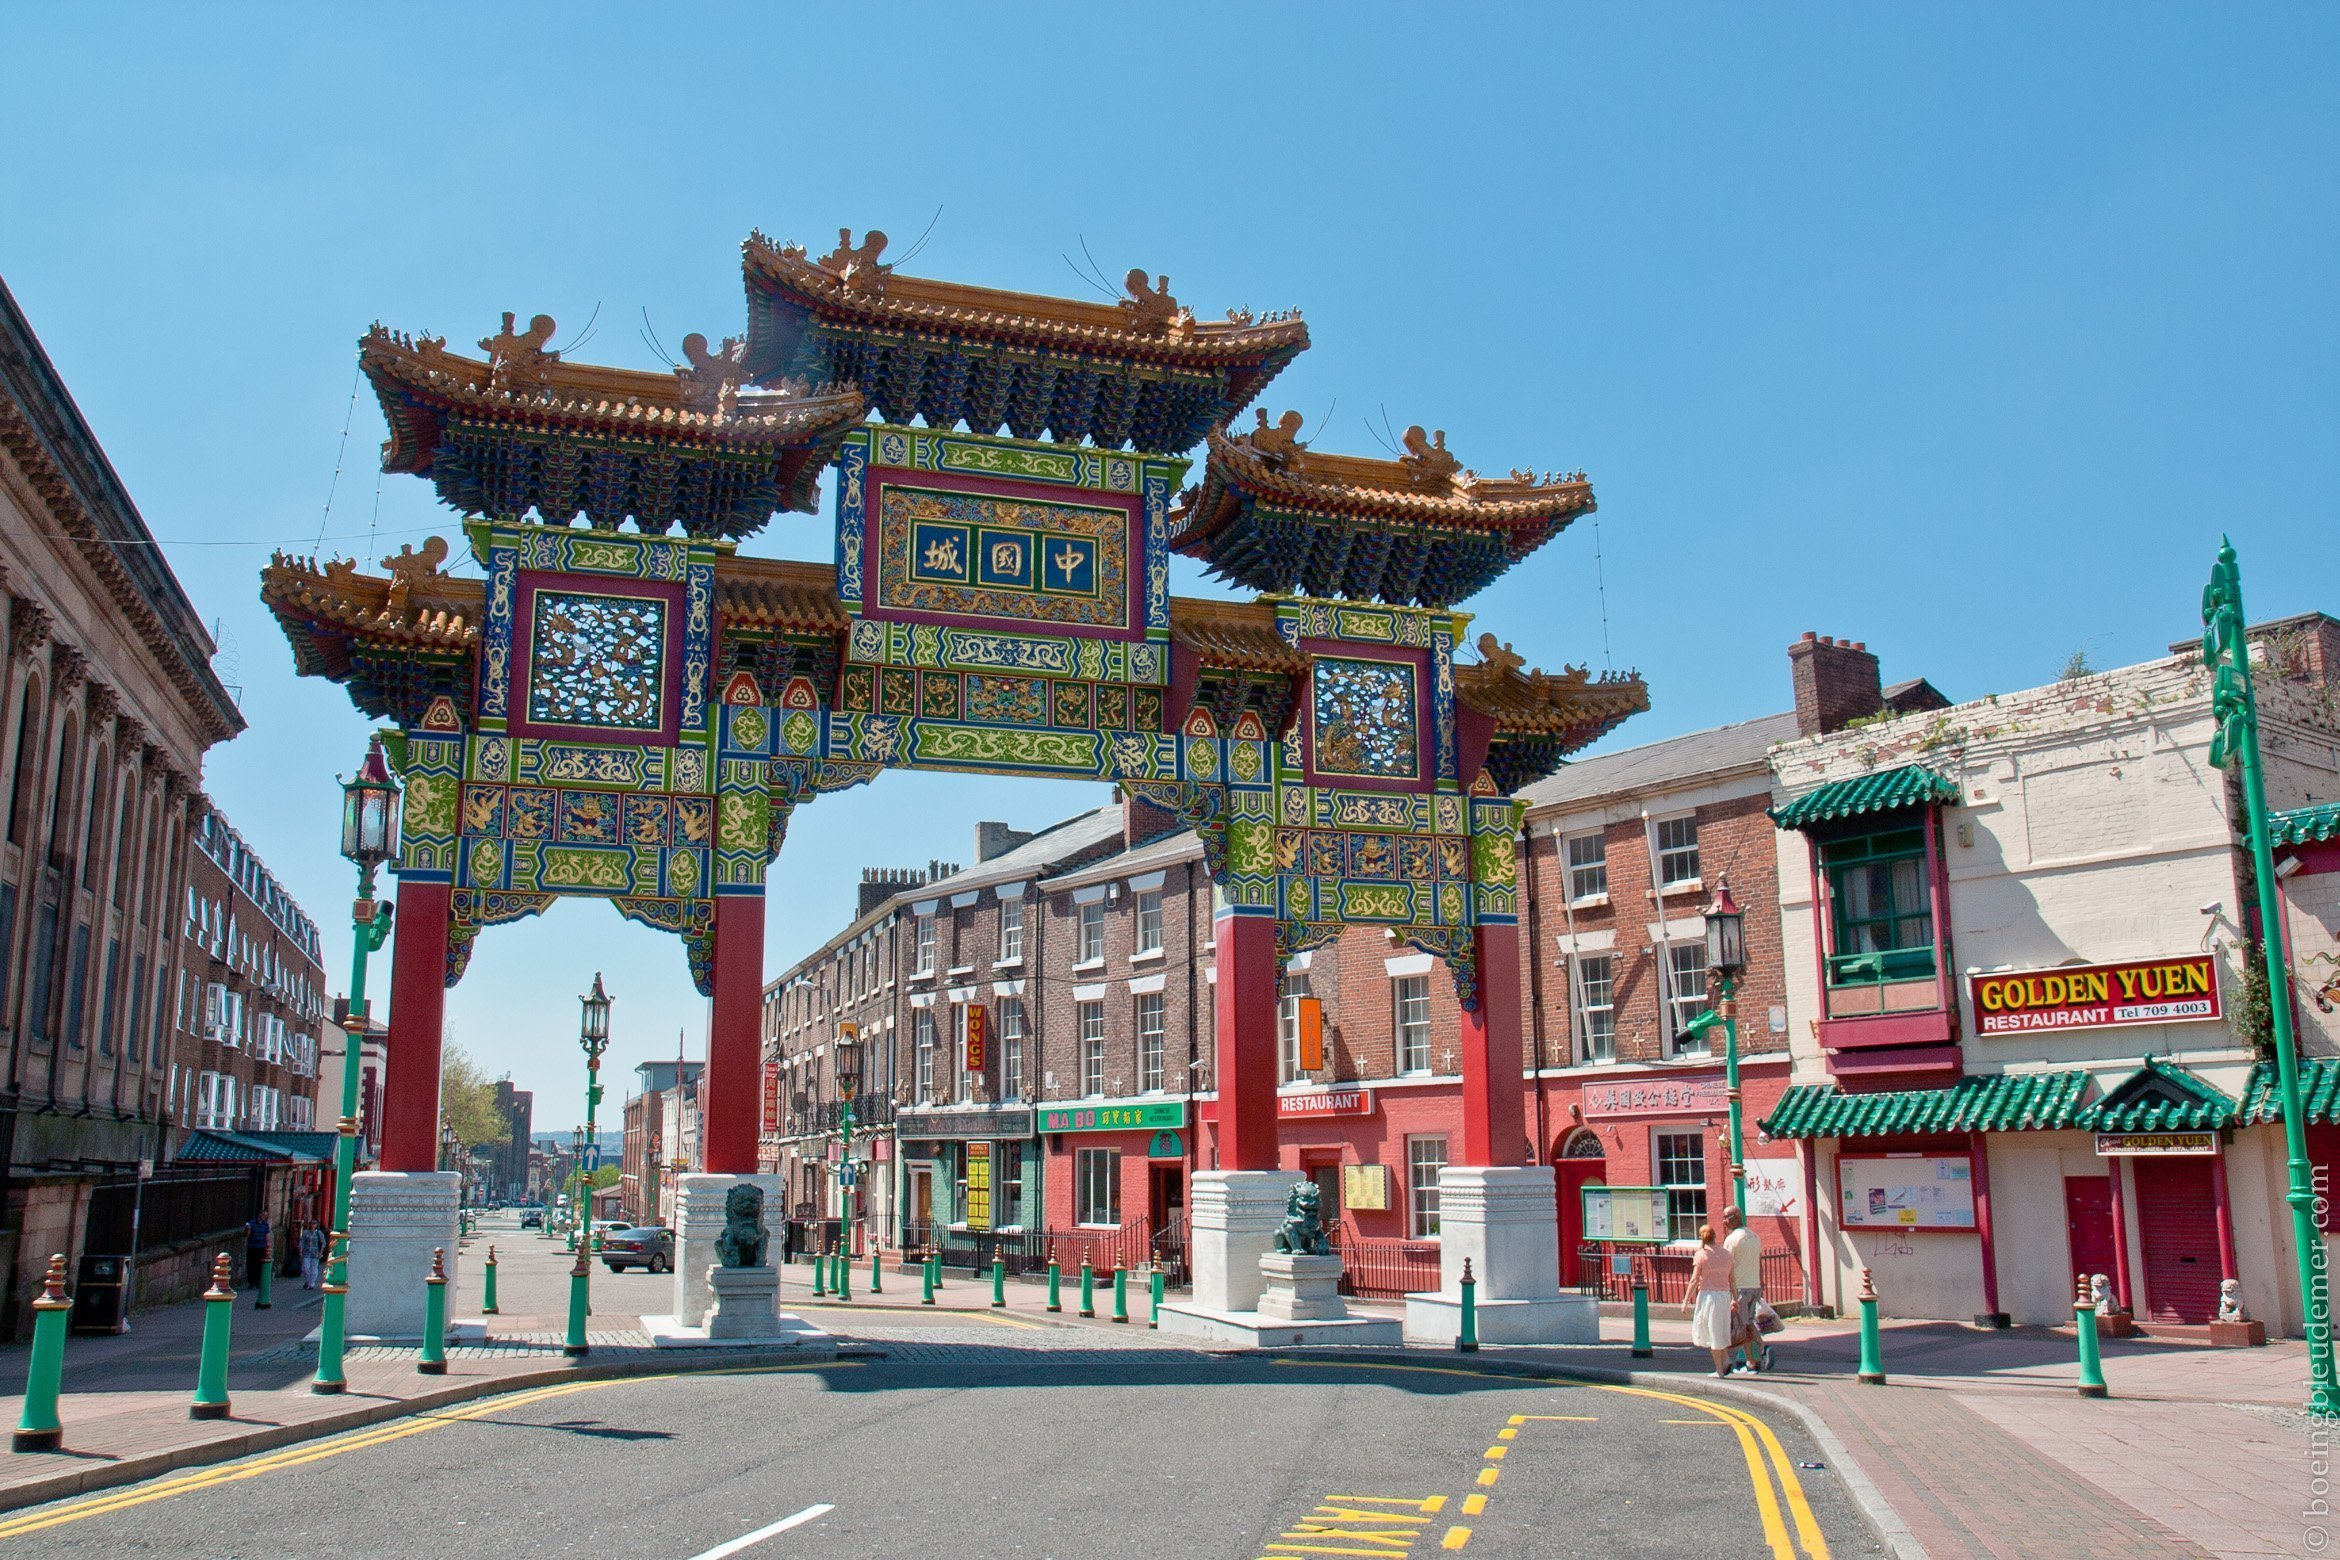 Quartier chinois de Liverpool